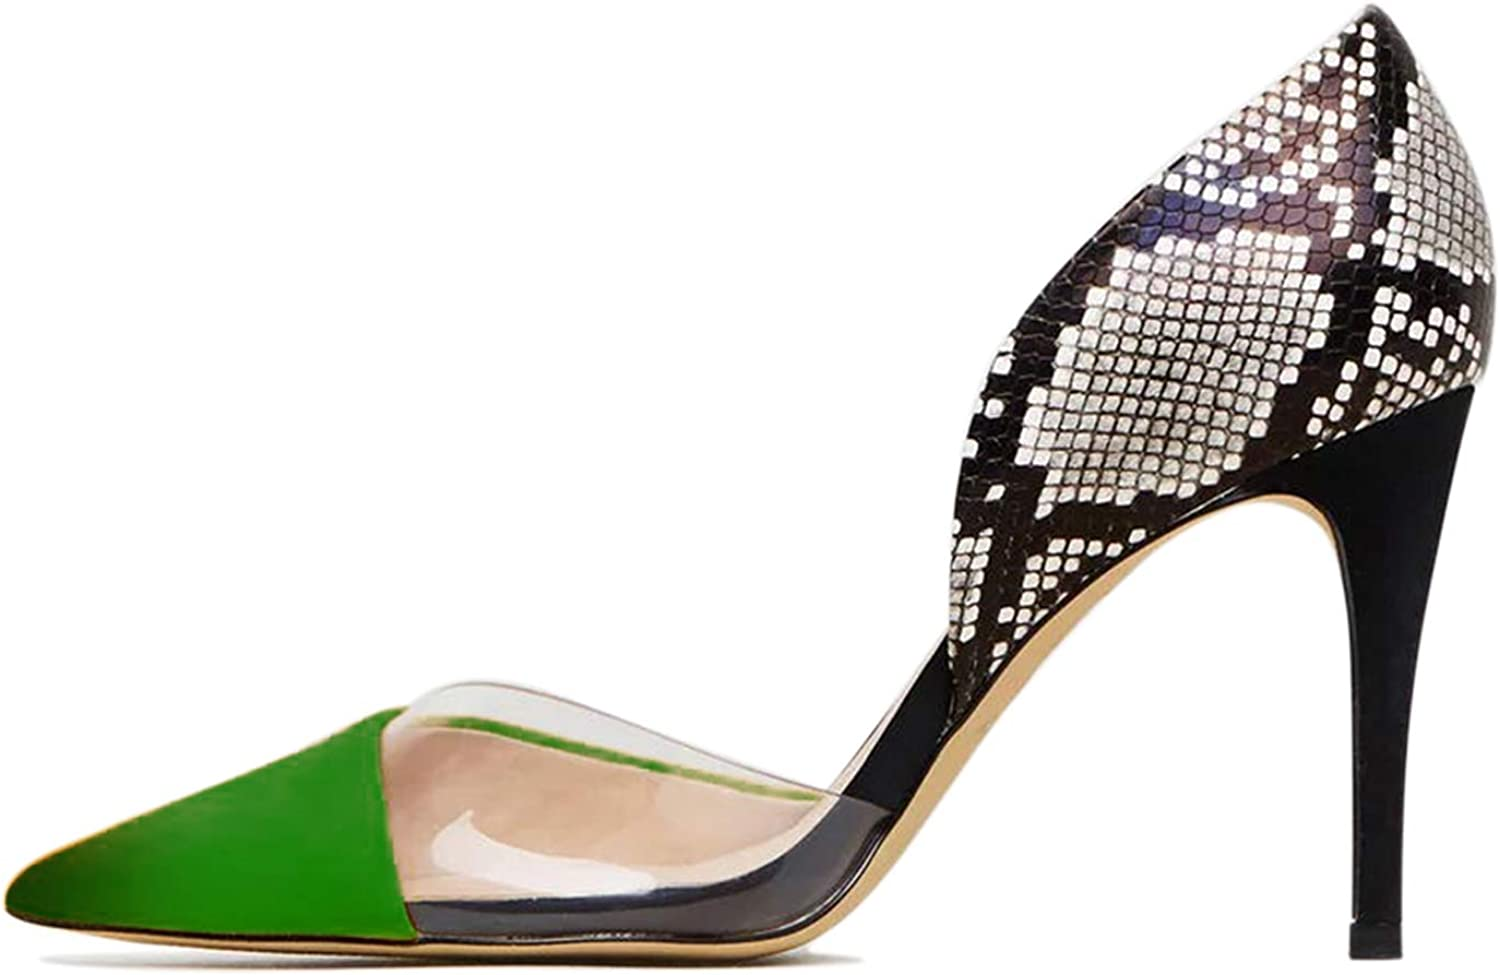 FOWT Women's D'Orsay Snake Print Heels Clear Stiletto Pointed Toe Pumps Slip On Dress Shoes for Party Wedding Office Sandals Multicolored 4-16 M US